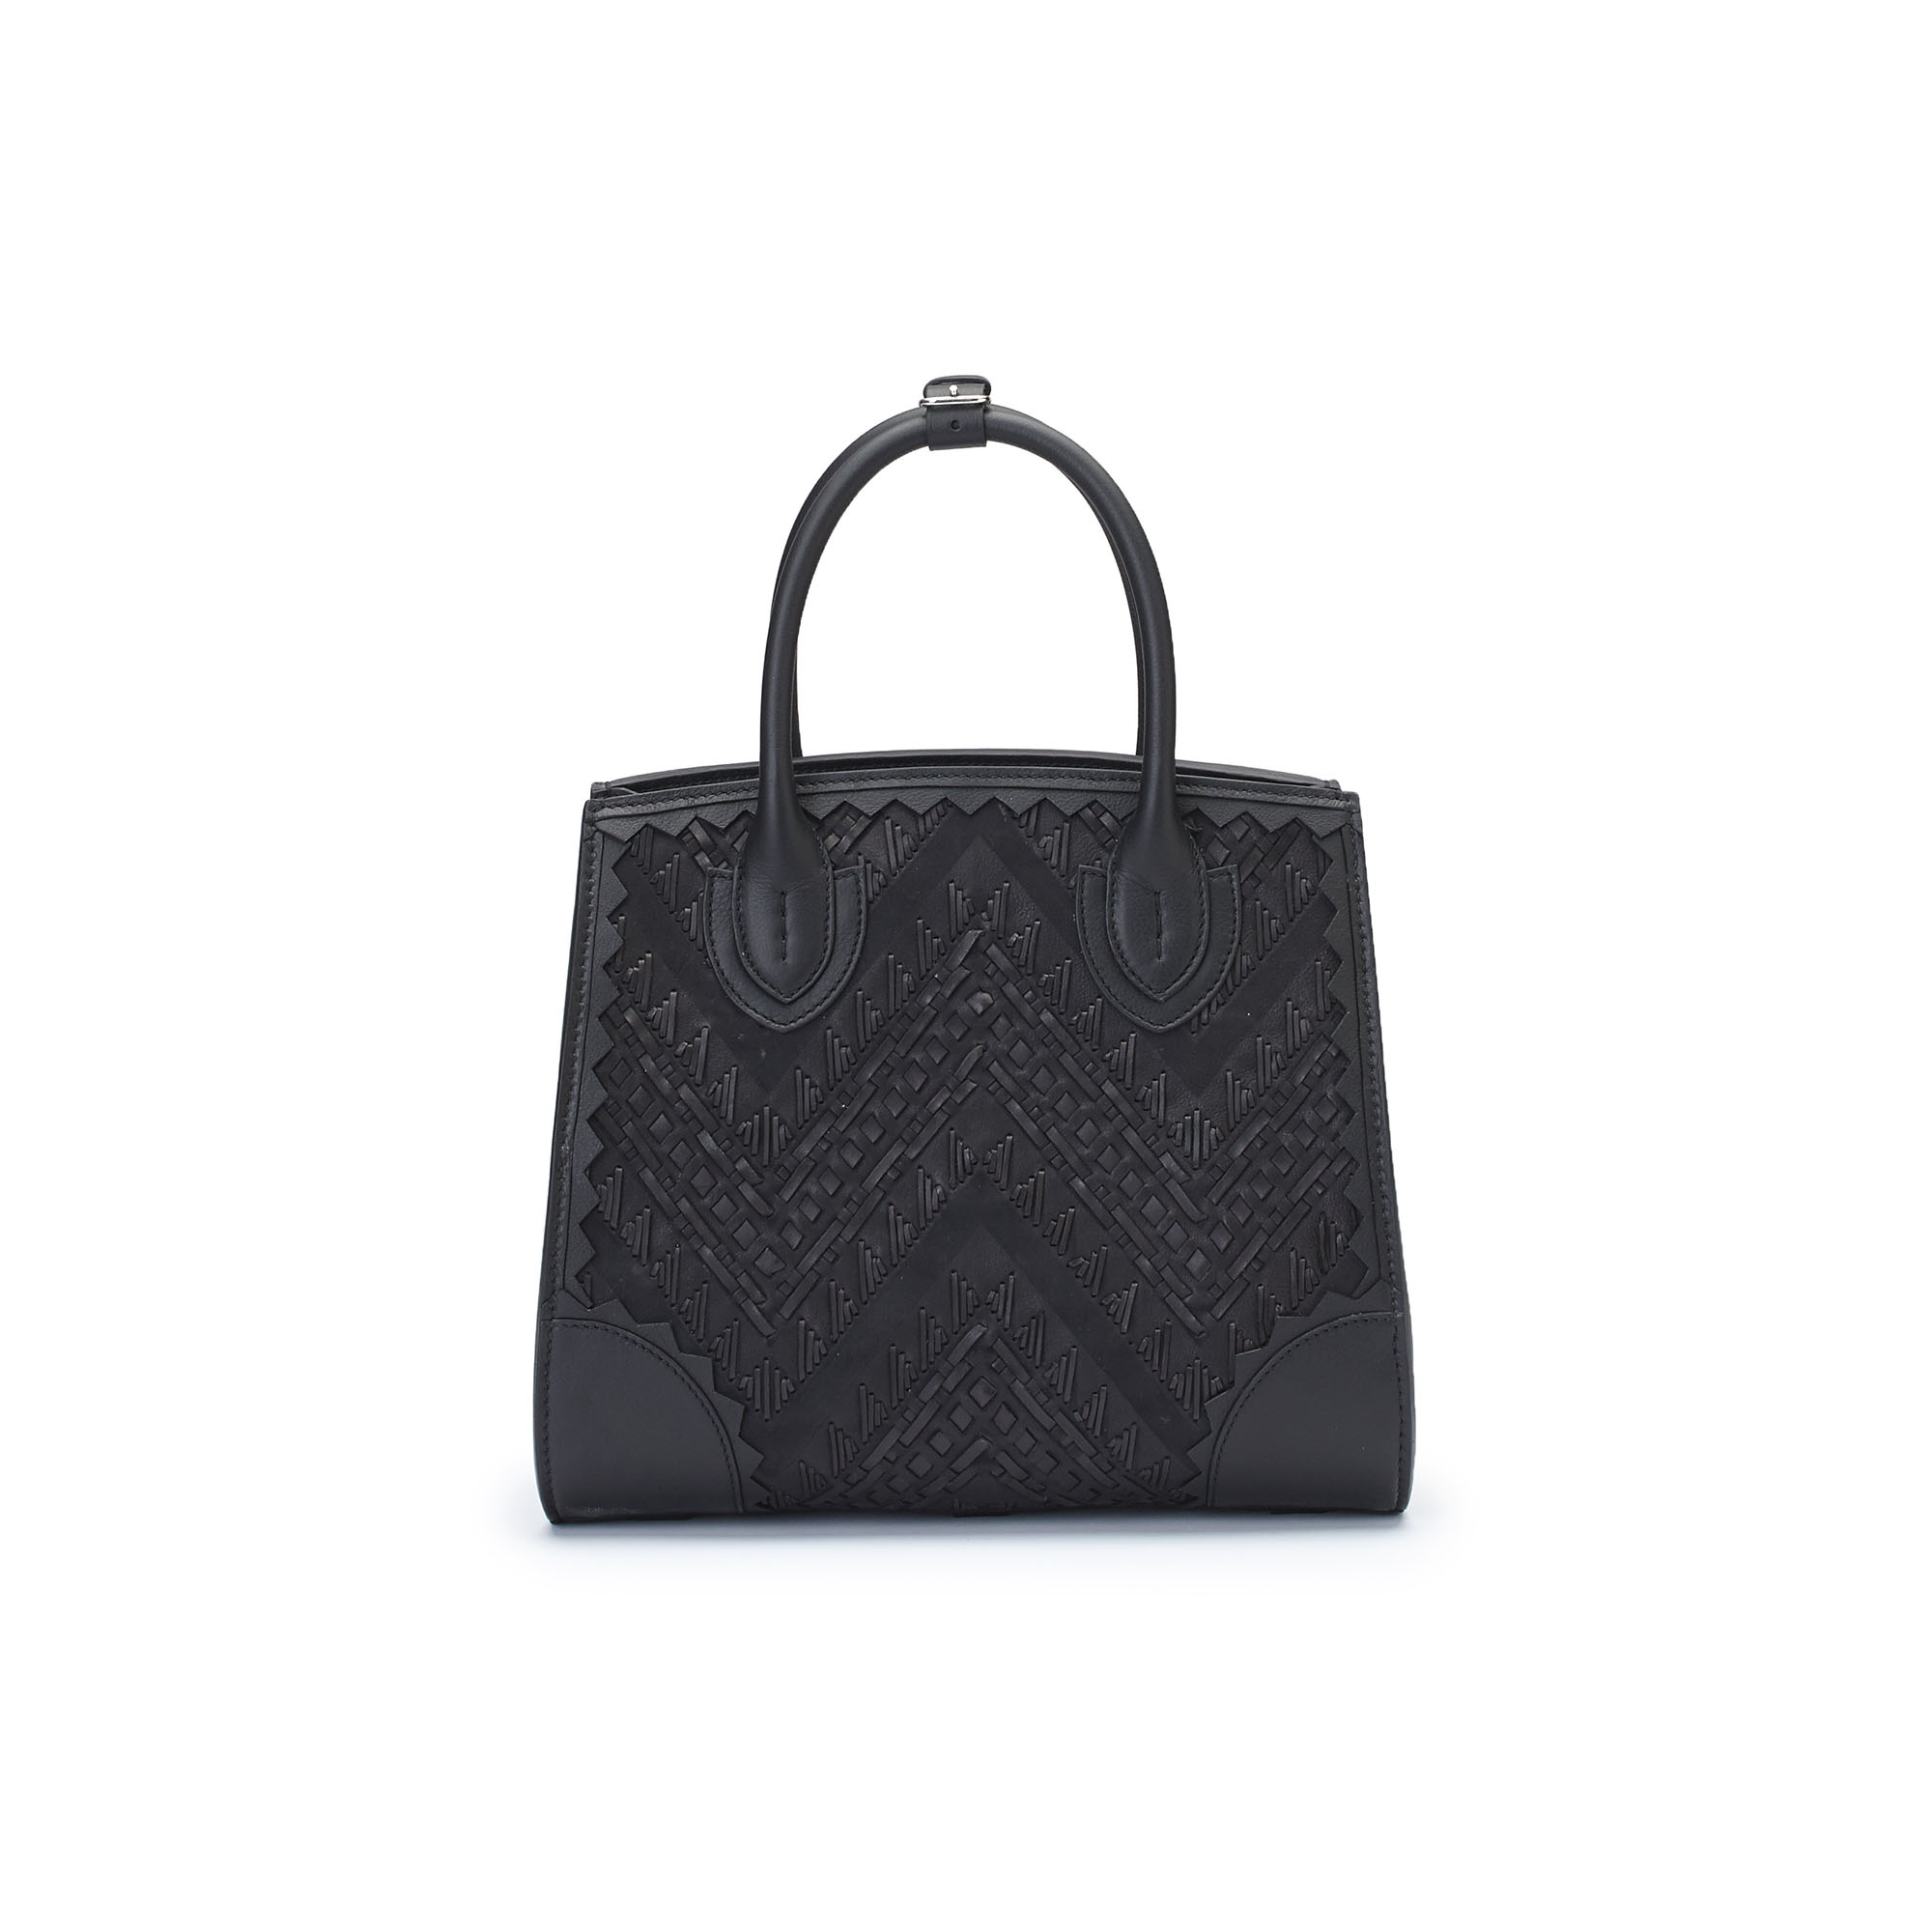 The black stranded leather with soft calf Darcy bag by Bertoni 1949 01